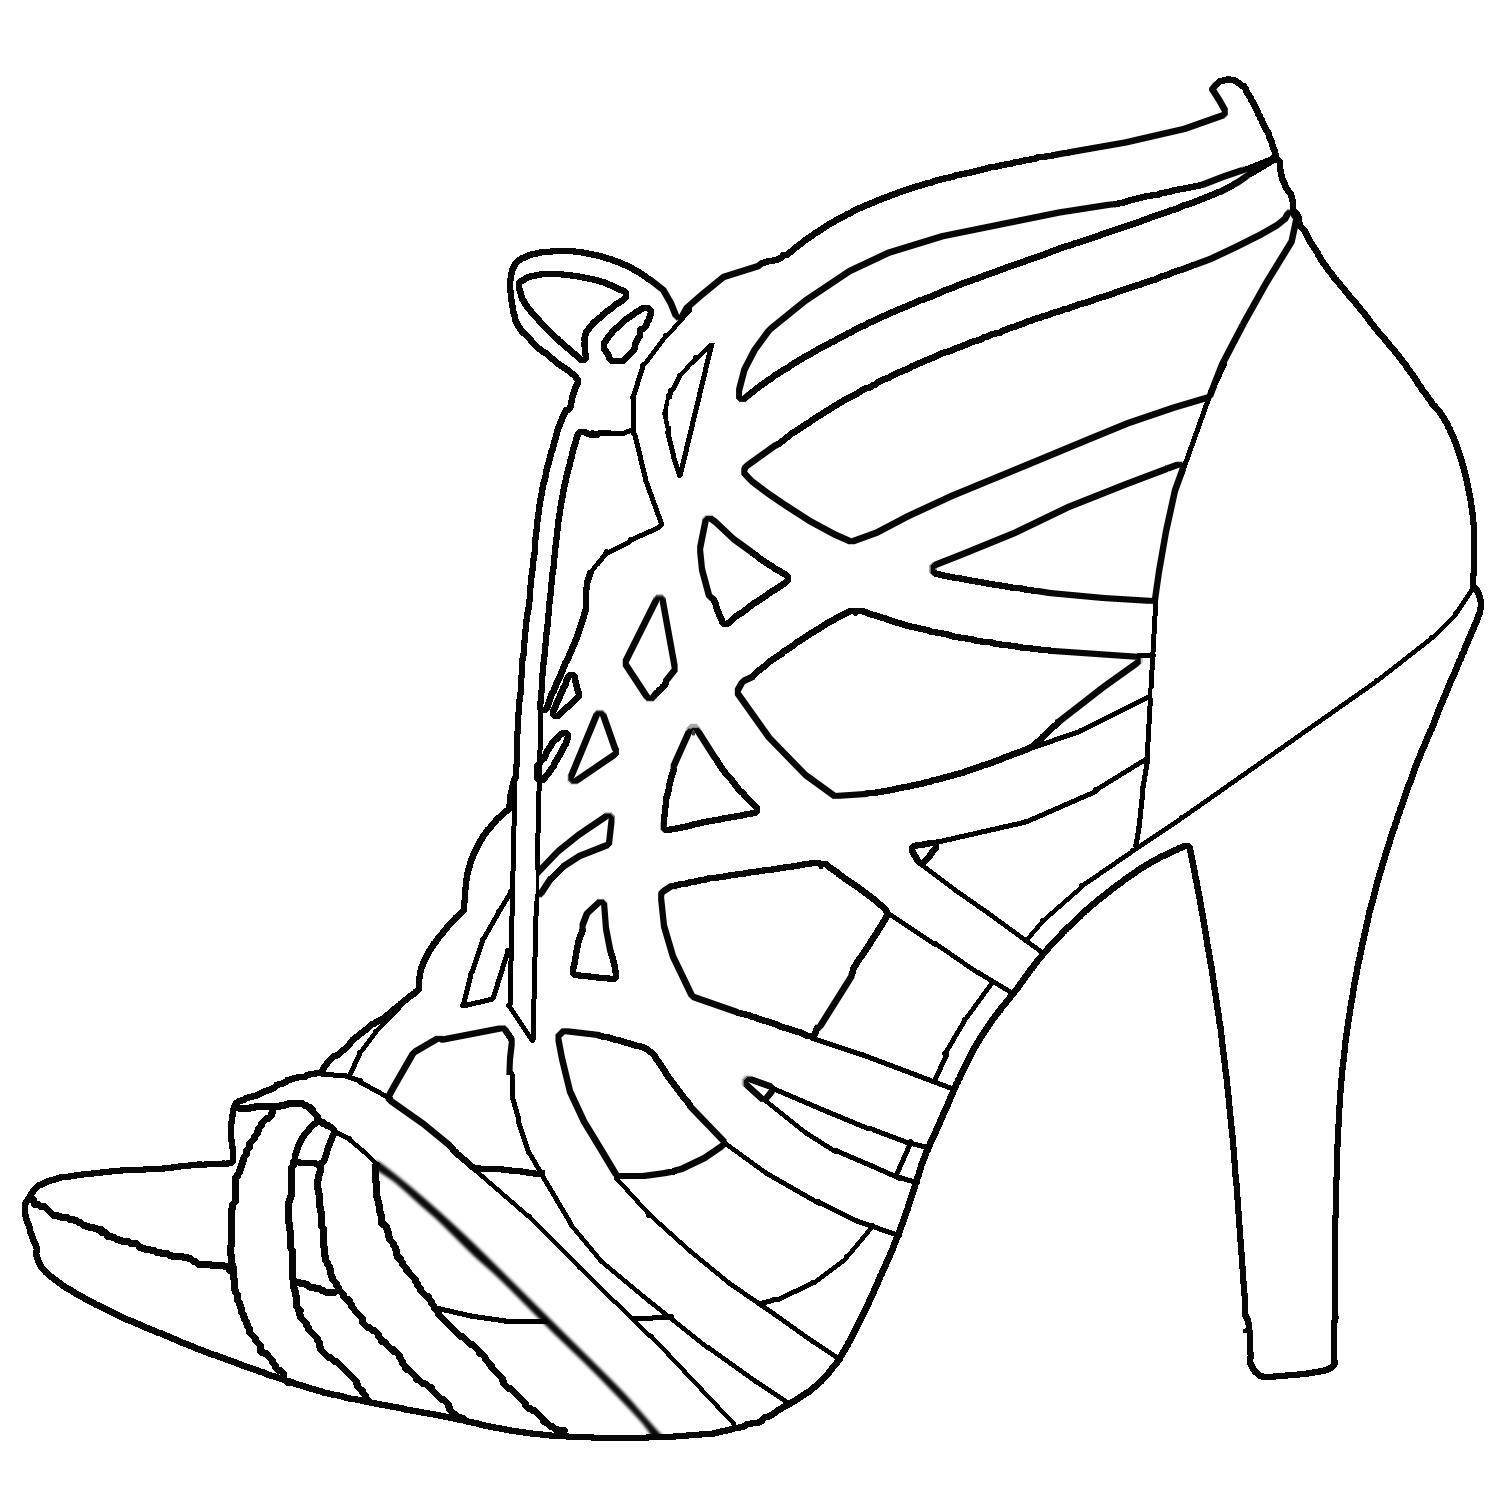 draw high heels high heels drawing free download on clipartmag draw heels high